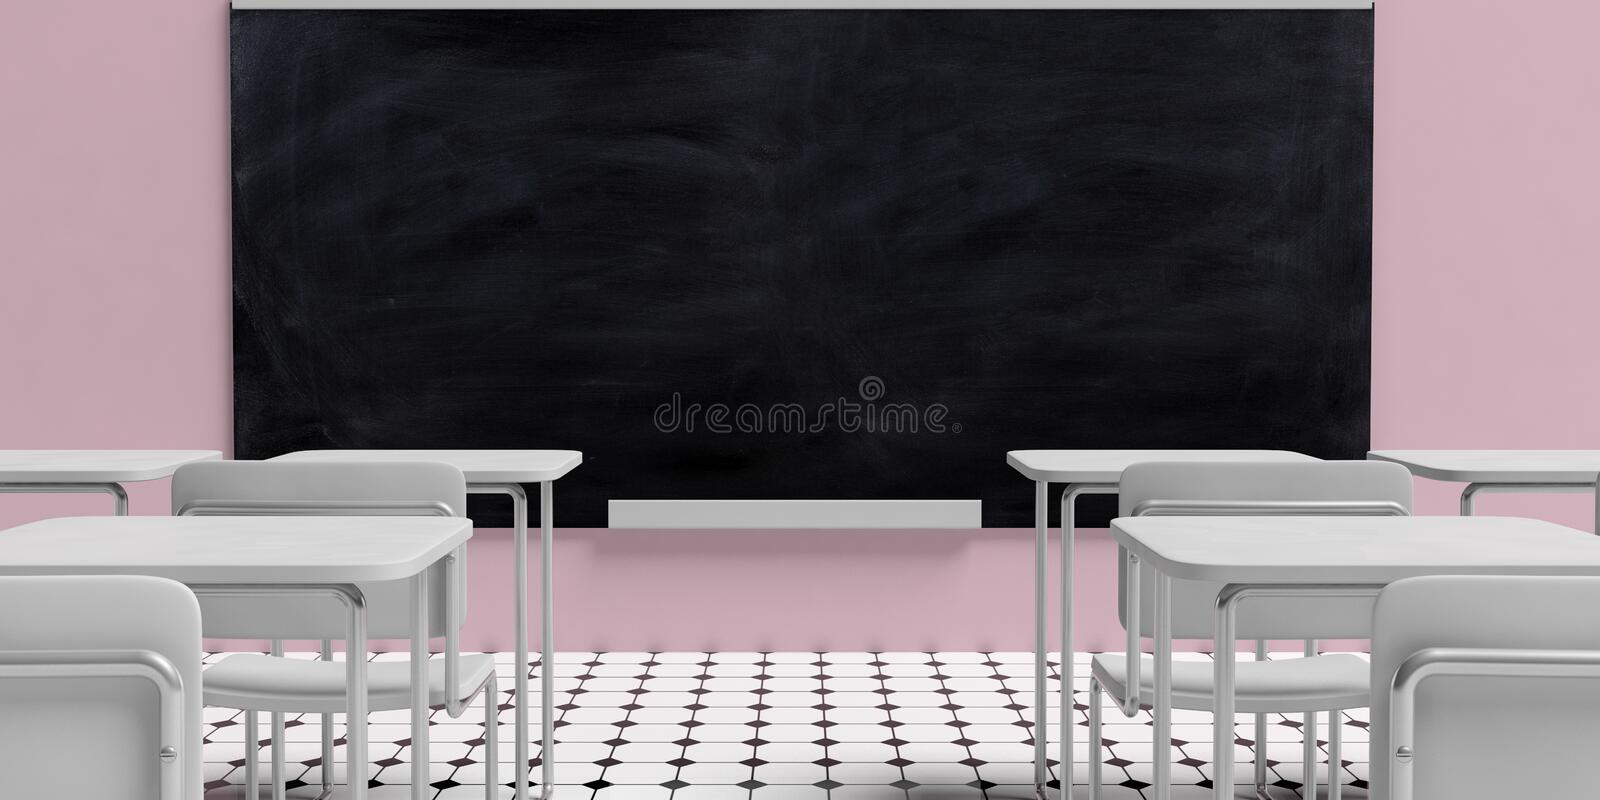 Education concept. Blackboard in empty classroom with white desks, against pink wall background and black and white octagon tiles royalty free illustration